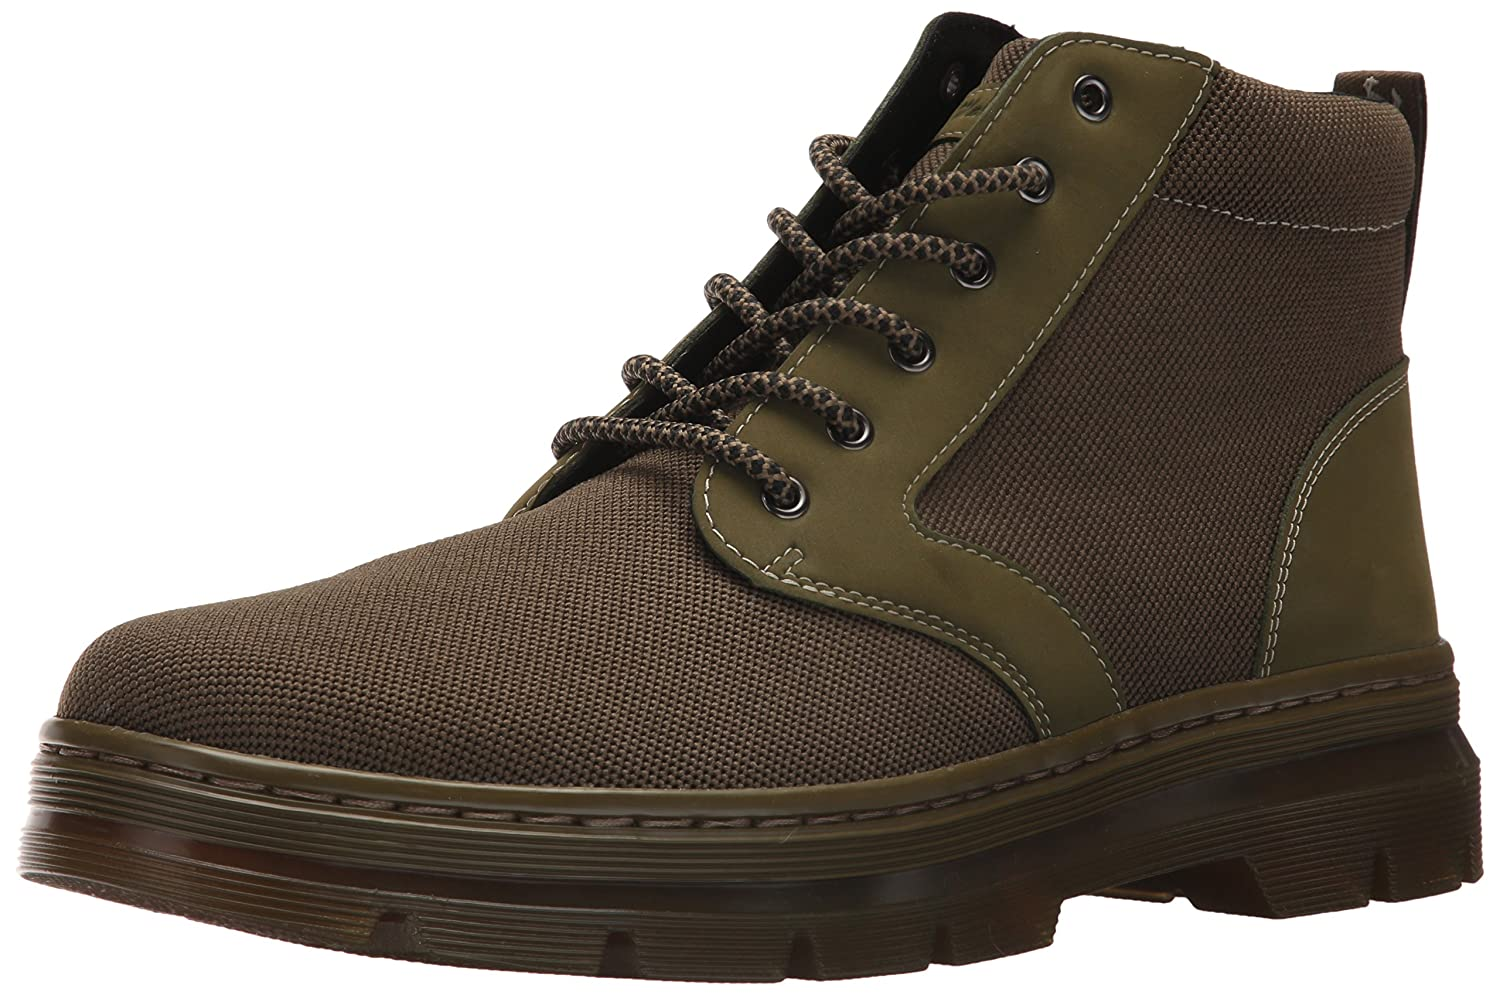 Dr. Martens Bonny II Olive Fashion Boot B072MTVDY1 7 Medium UK (US Women's 9, US Mens 8 US)|Olive